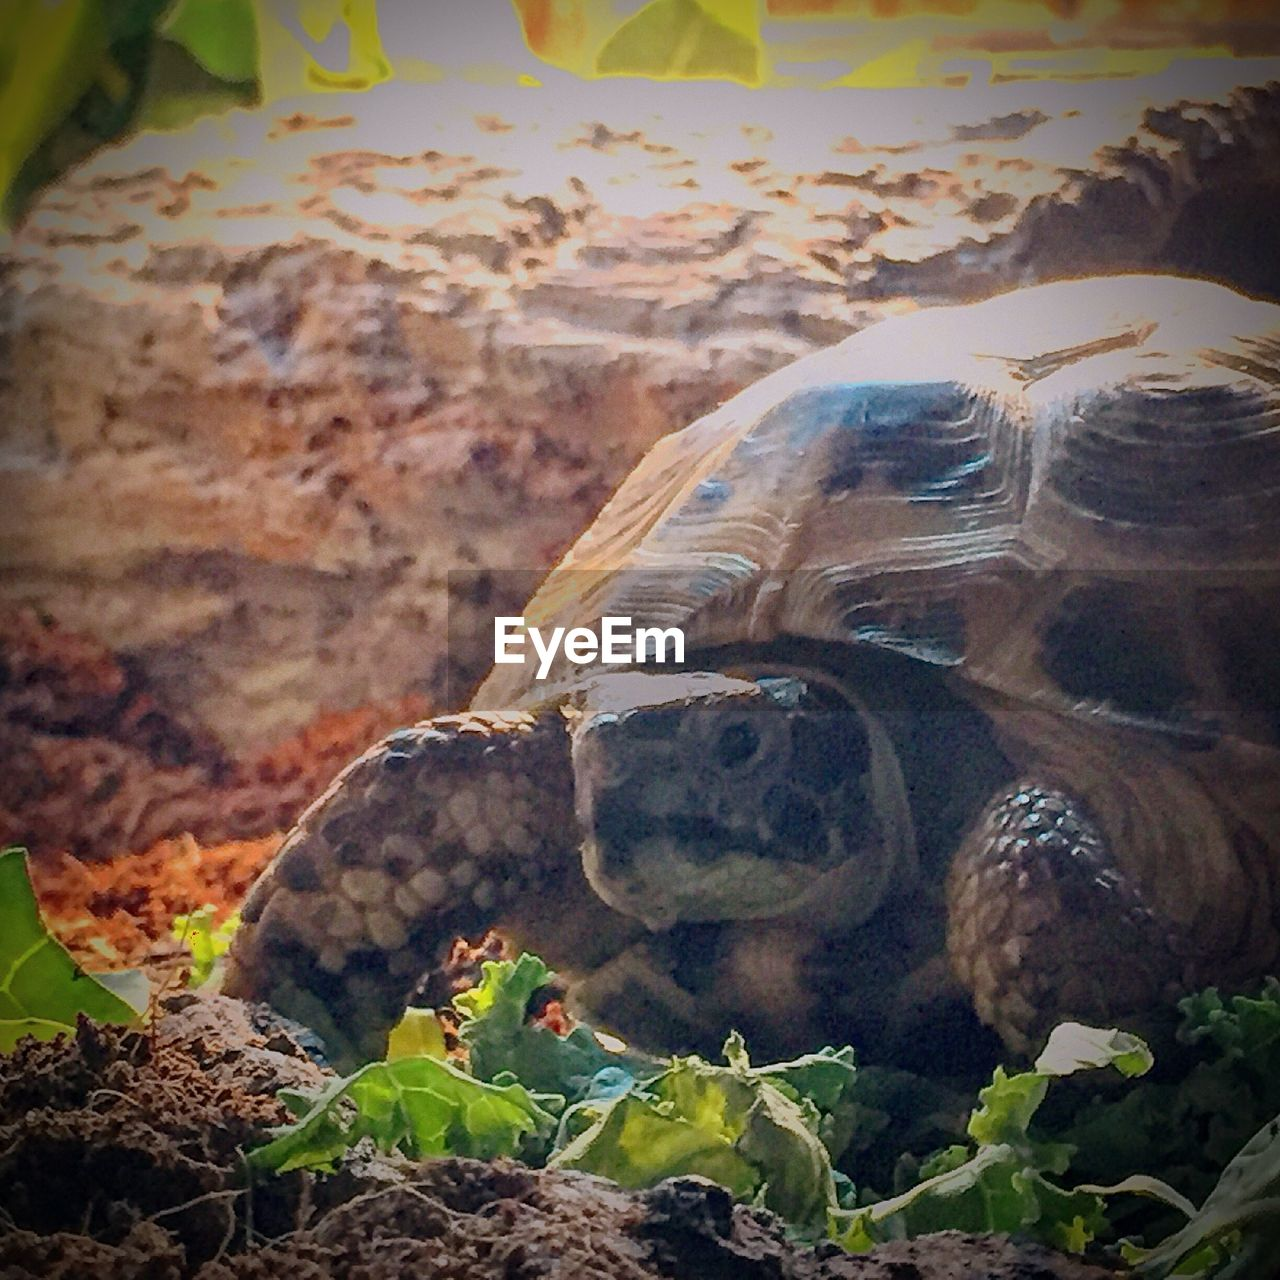 nature, no people, outdoors, animals in the wild, day, animal themes, beauty in nature, one animal, close-up, mammal, tortoise shell